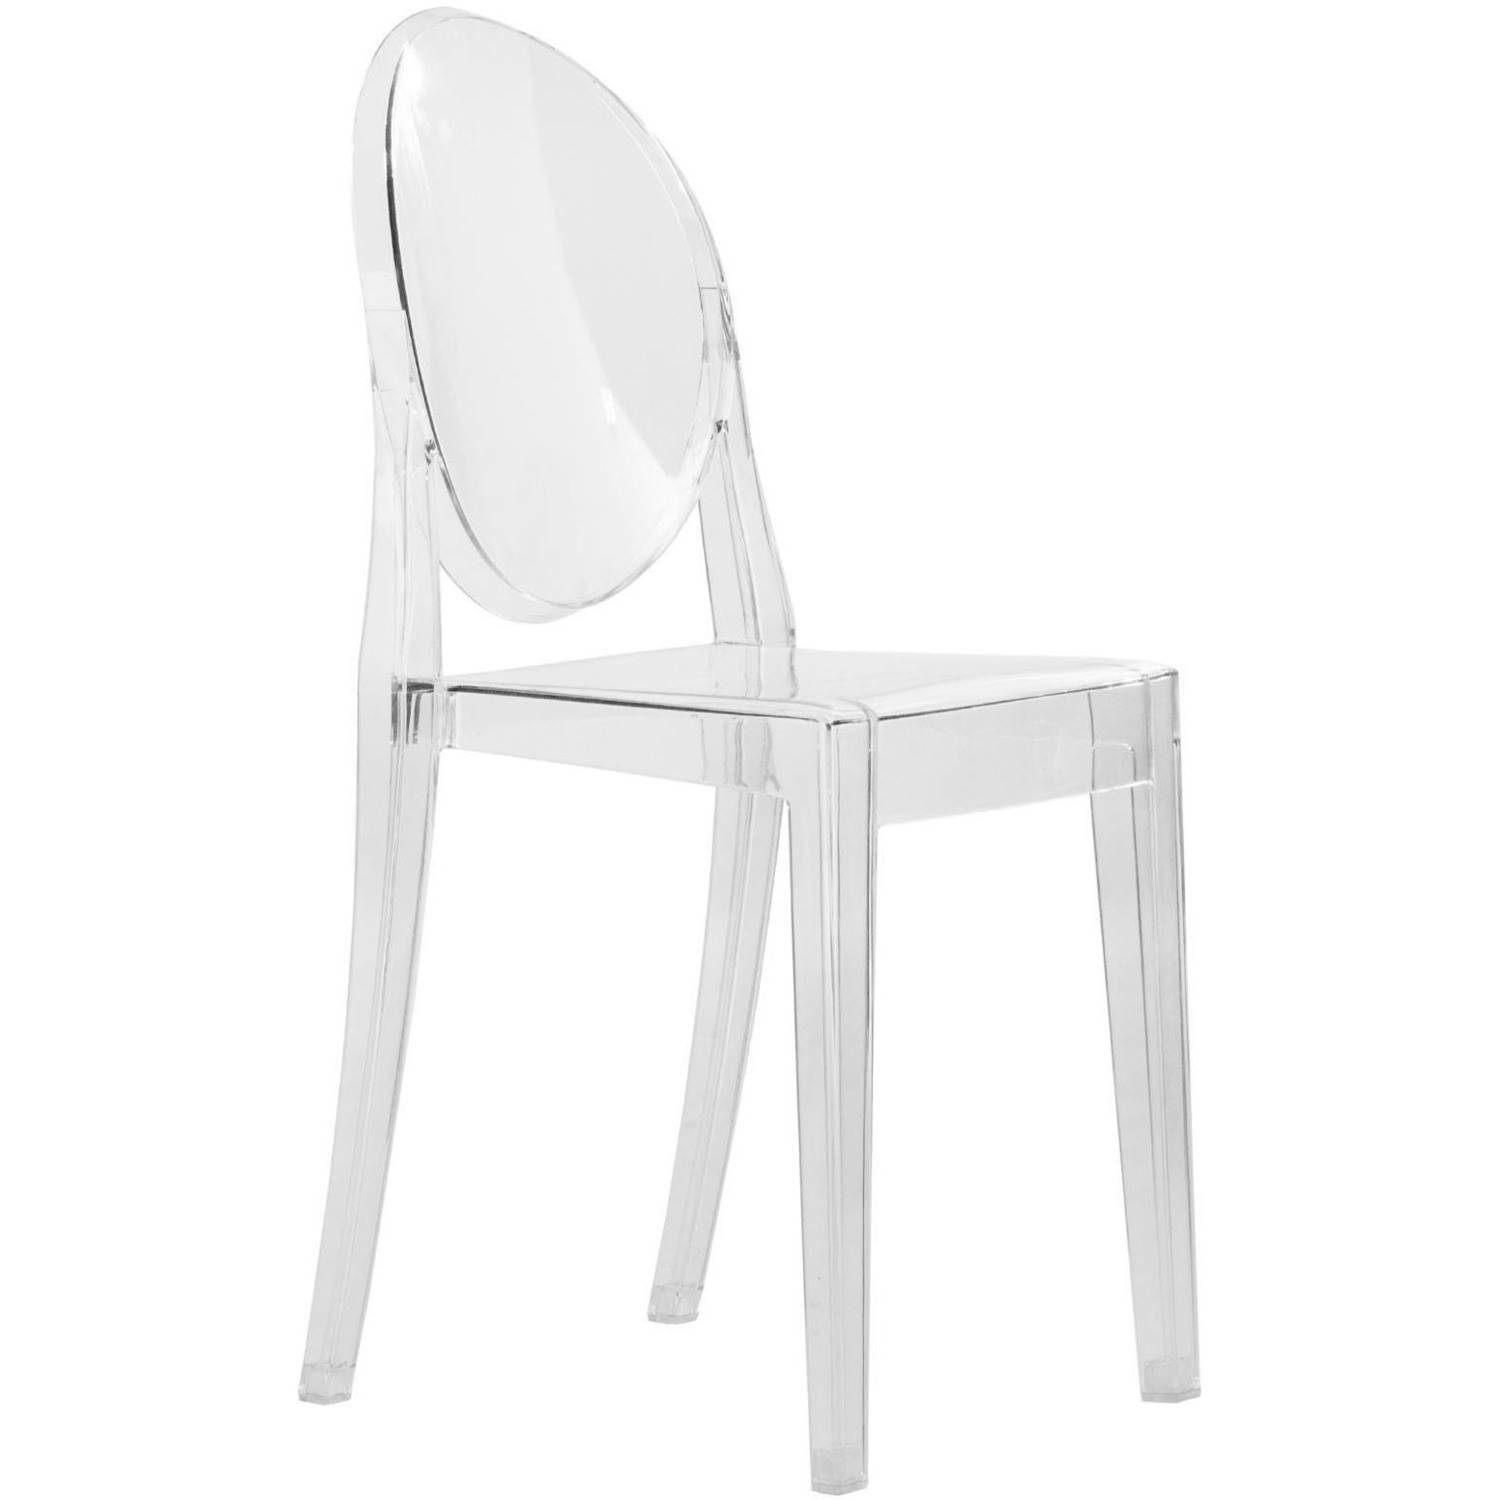 Cheap Acrylic Ghost Chairs Lucite Chairs Acrylic Chair Clear